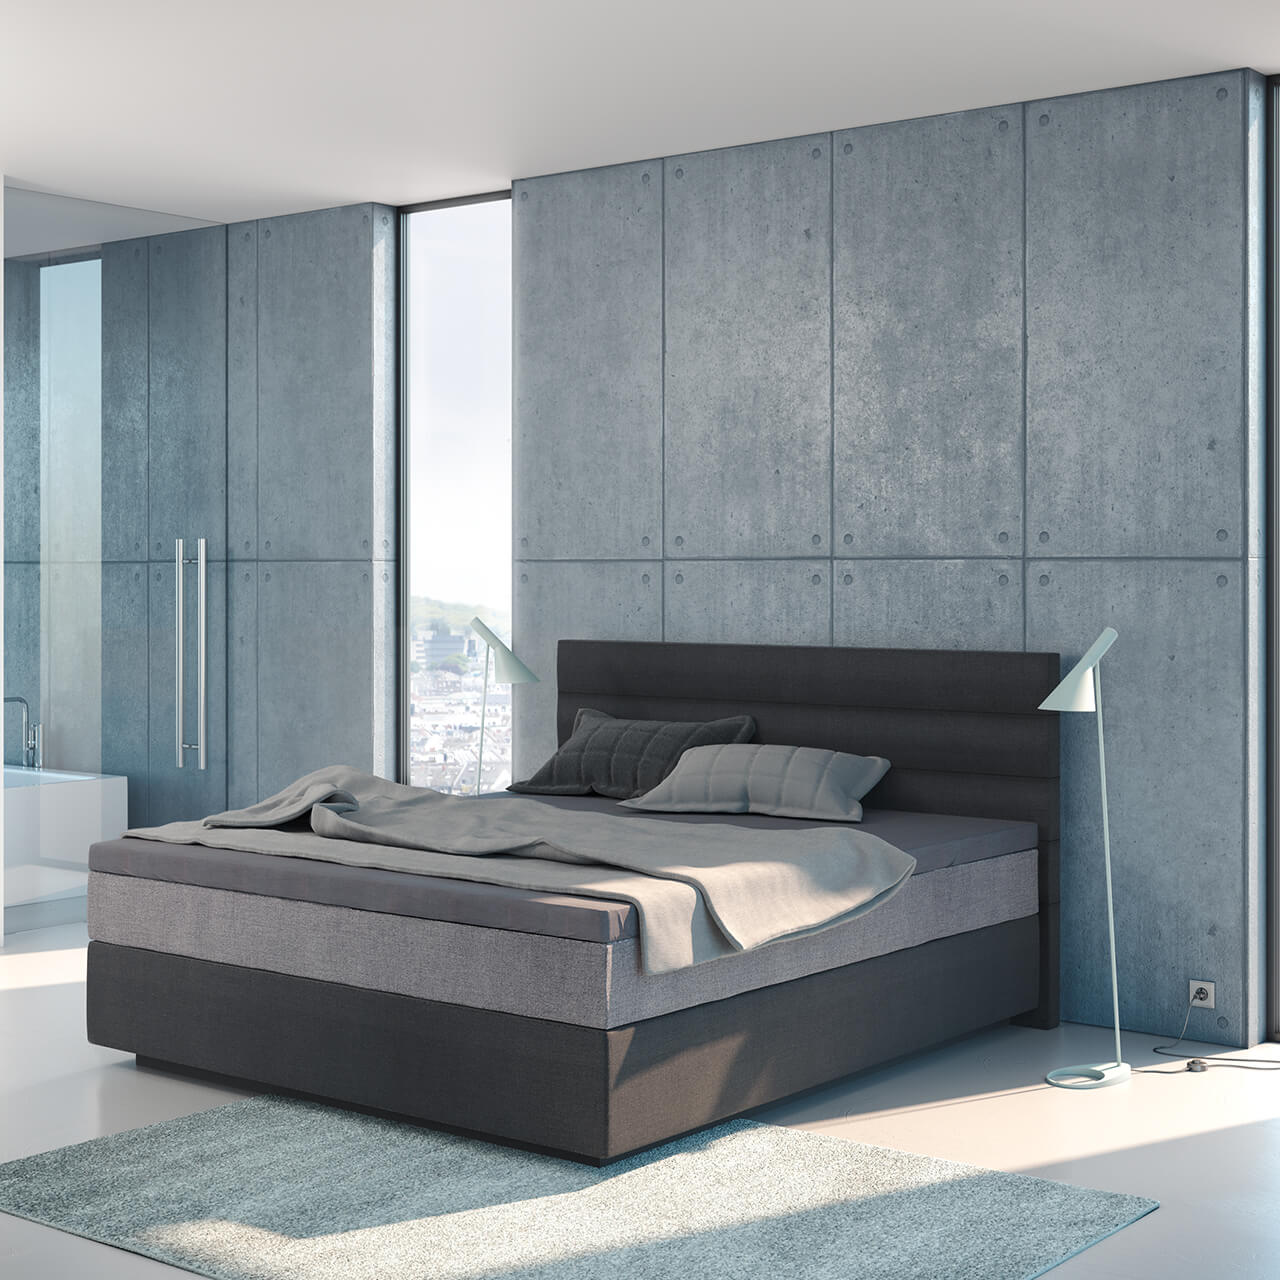 suma boxspring wasserbett topper hoher einstieg suma wasserbetten. Black Bedroom Furniture Sets. Home Design Ideas